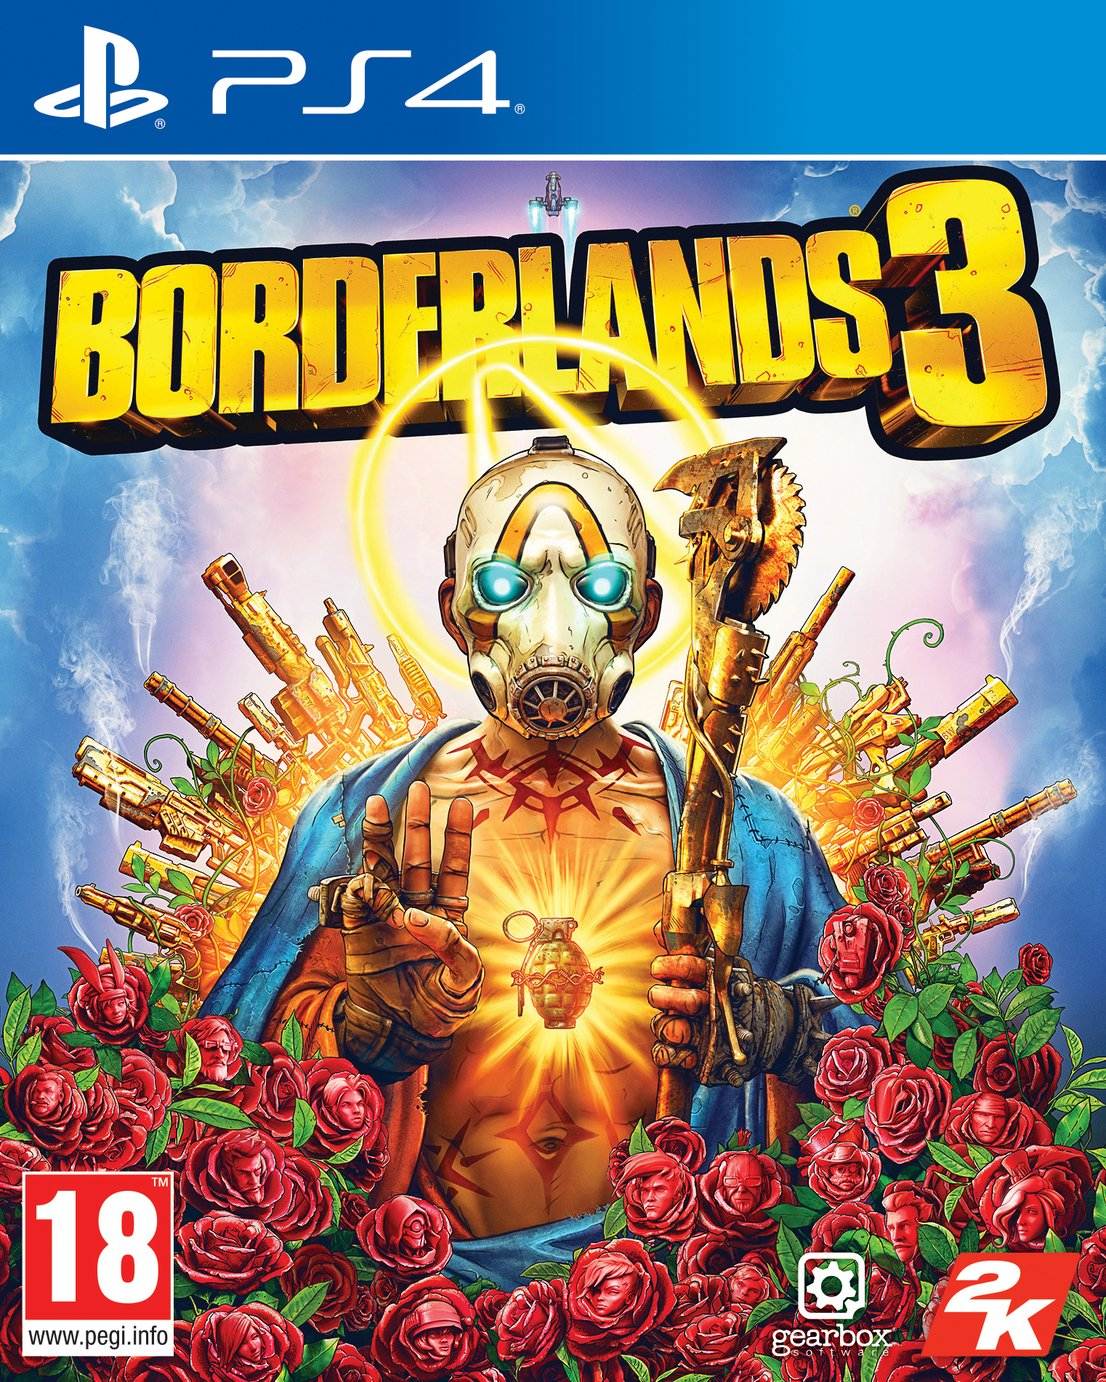 Borderlands 3 PS4 Pre-Order Game